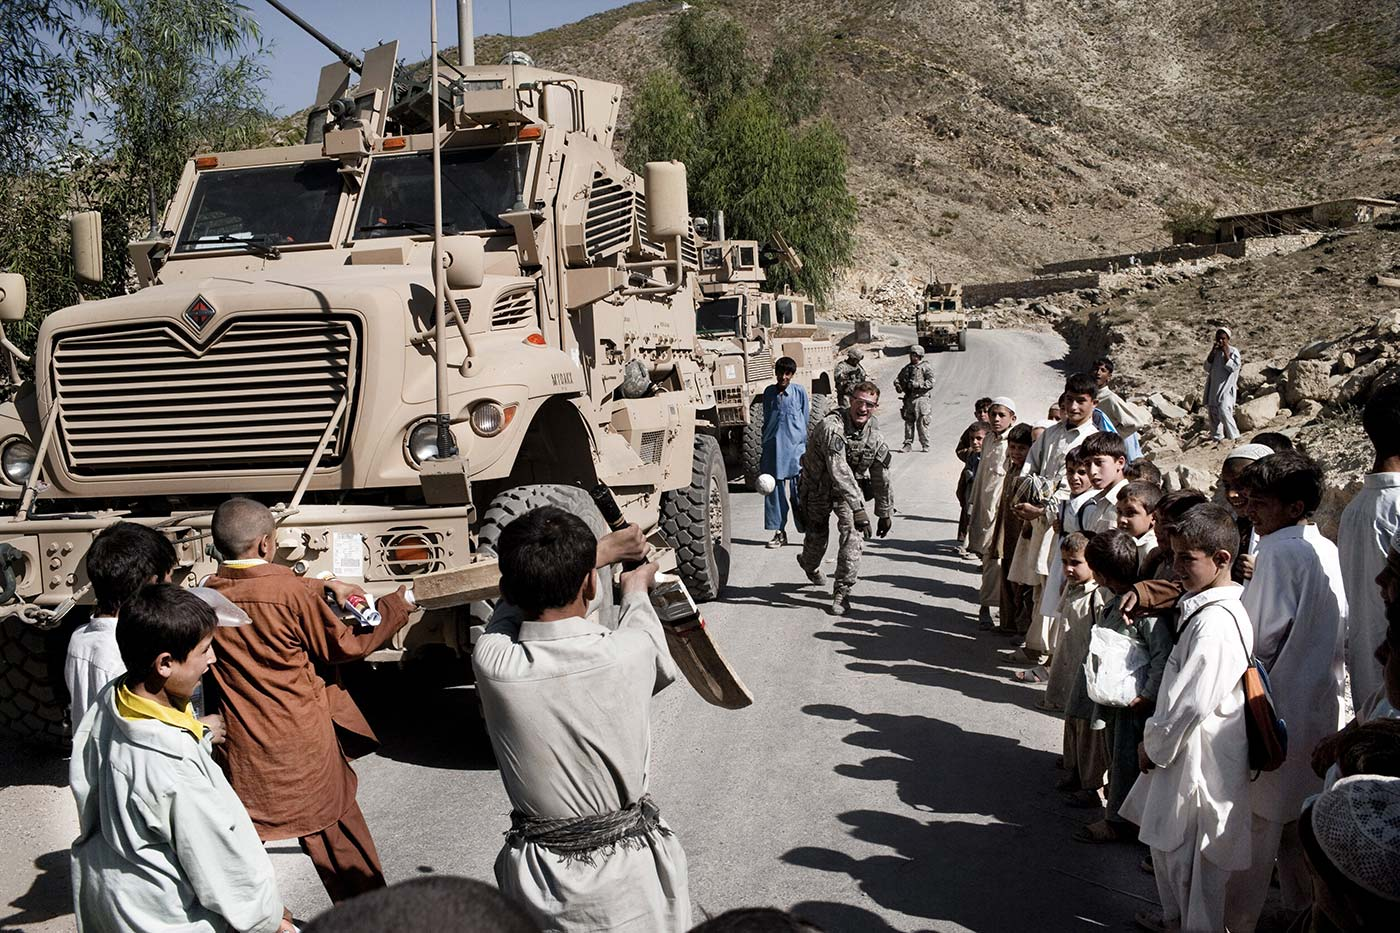 An American soldier plays cricket with local kids in Kunar province in 2009